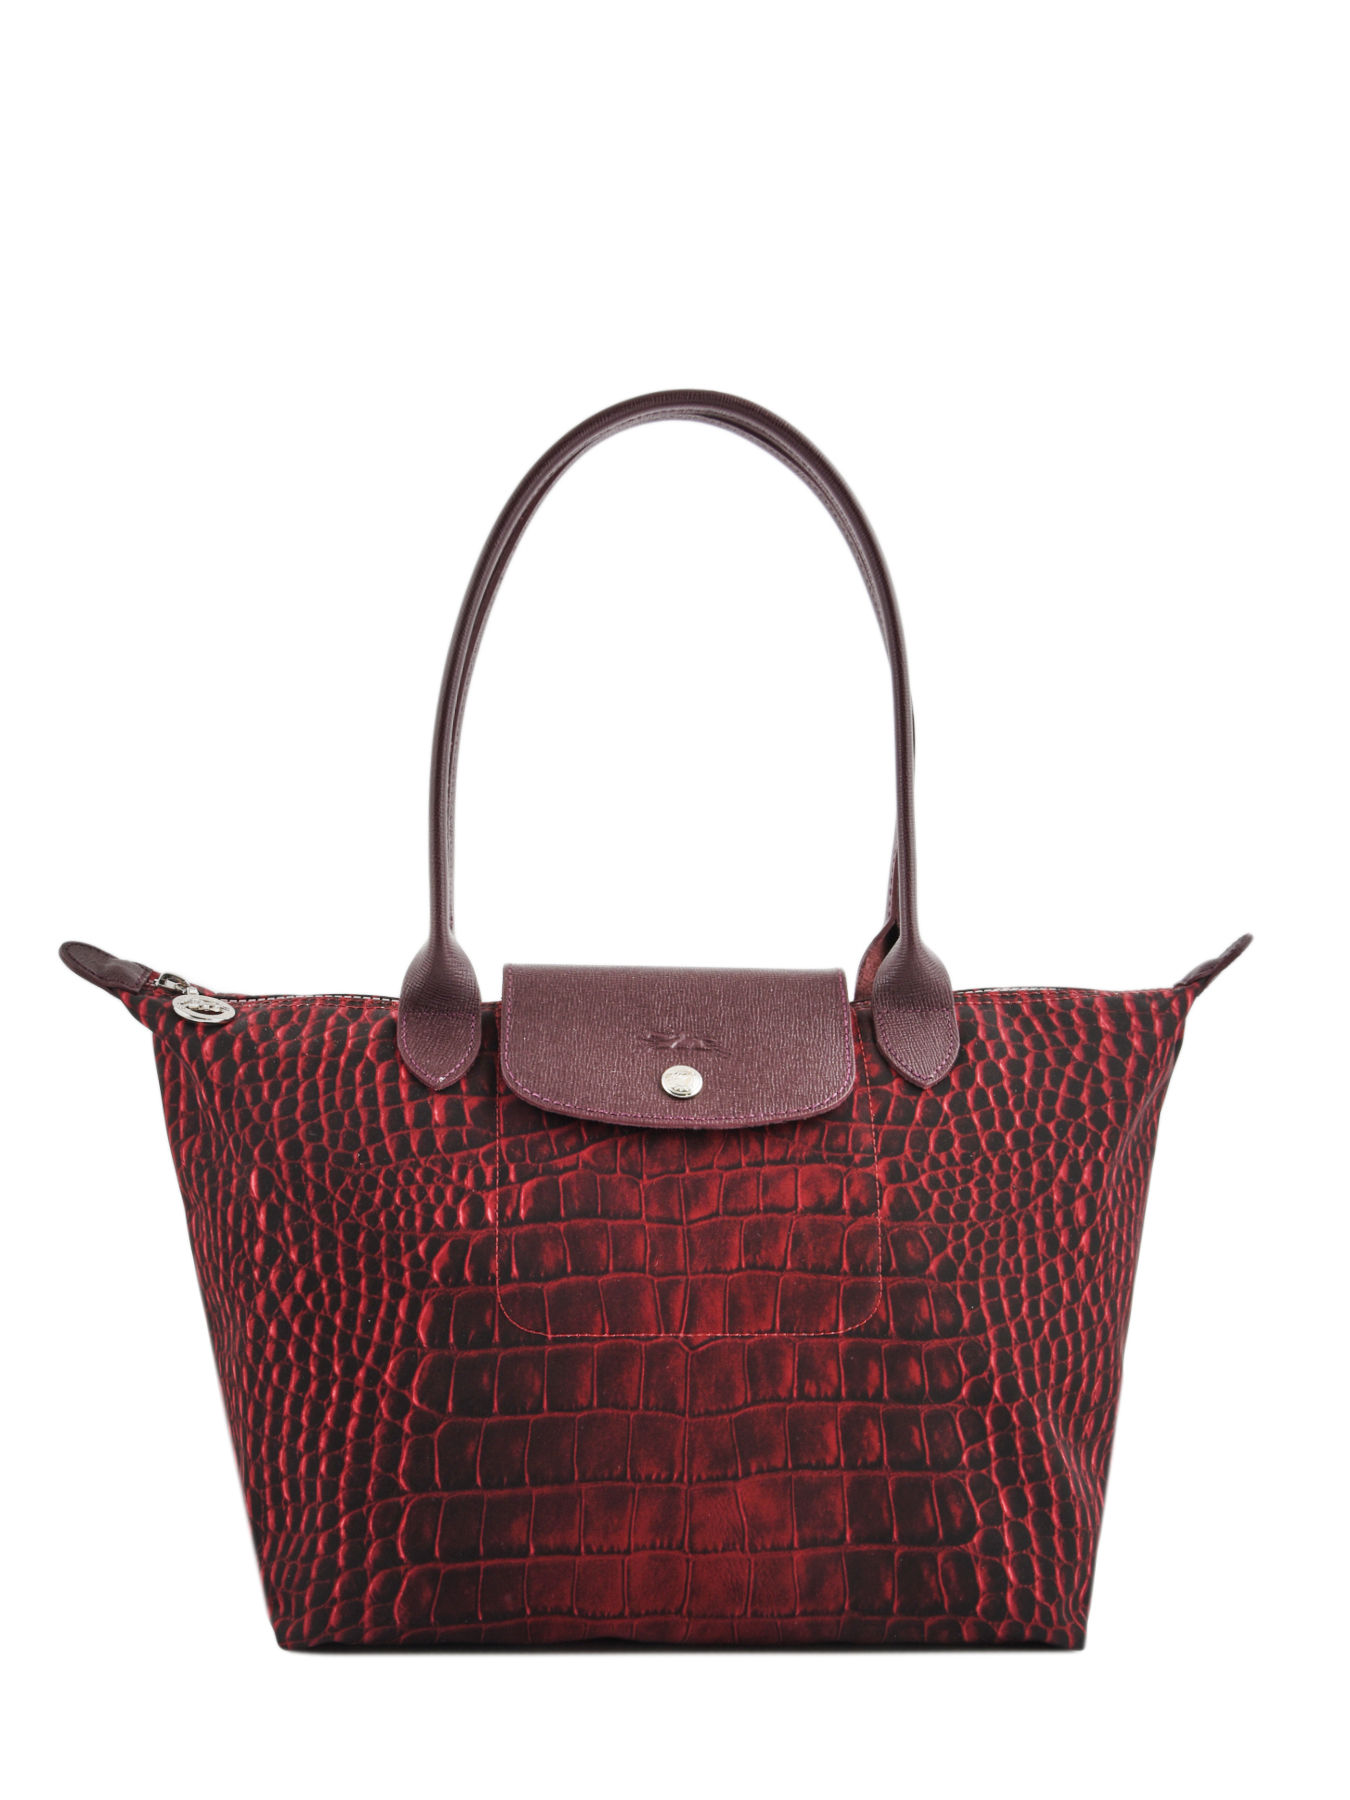 811fac77dec Longchamp Hobo bag 2605672 - free shipping available